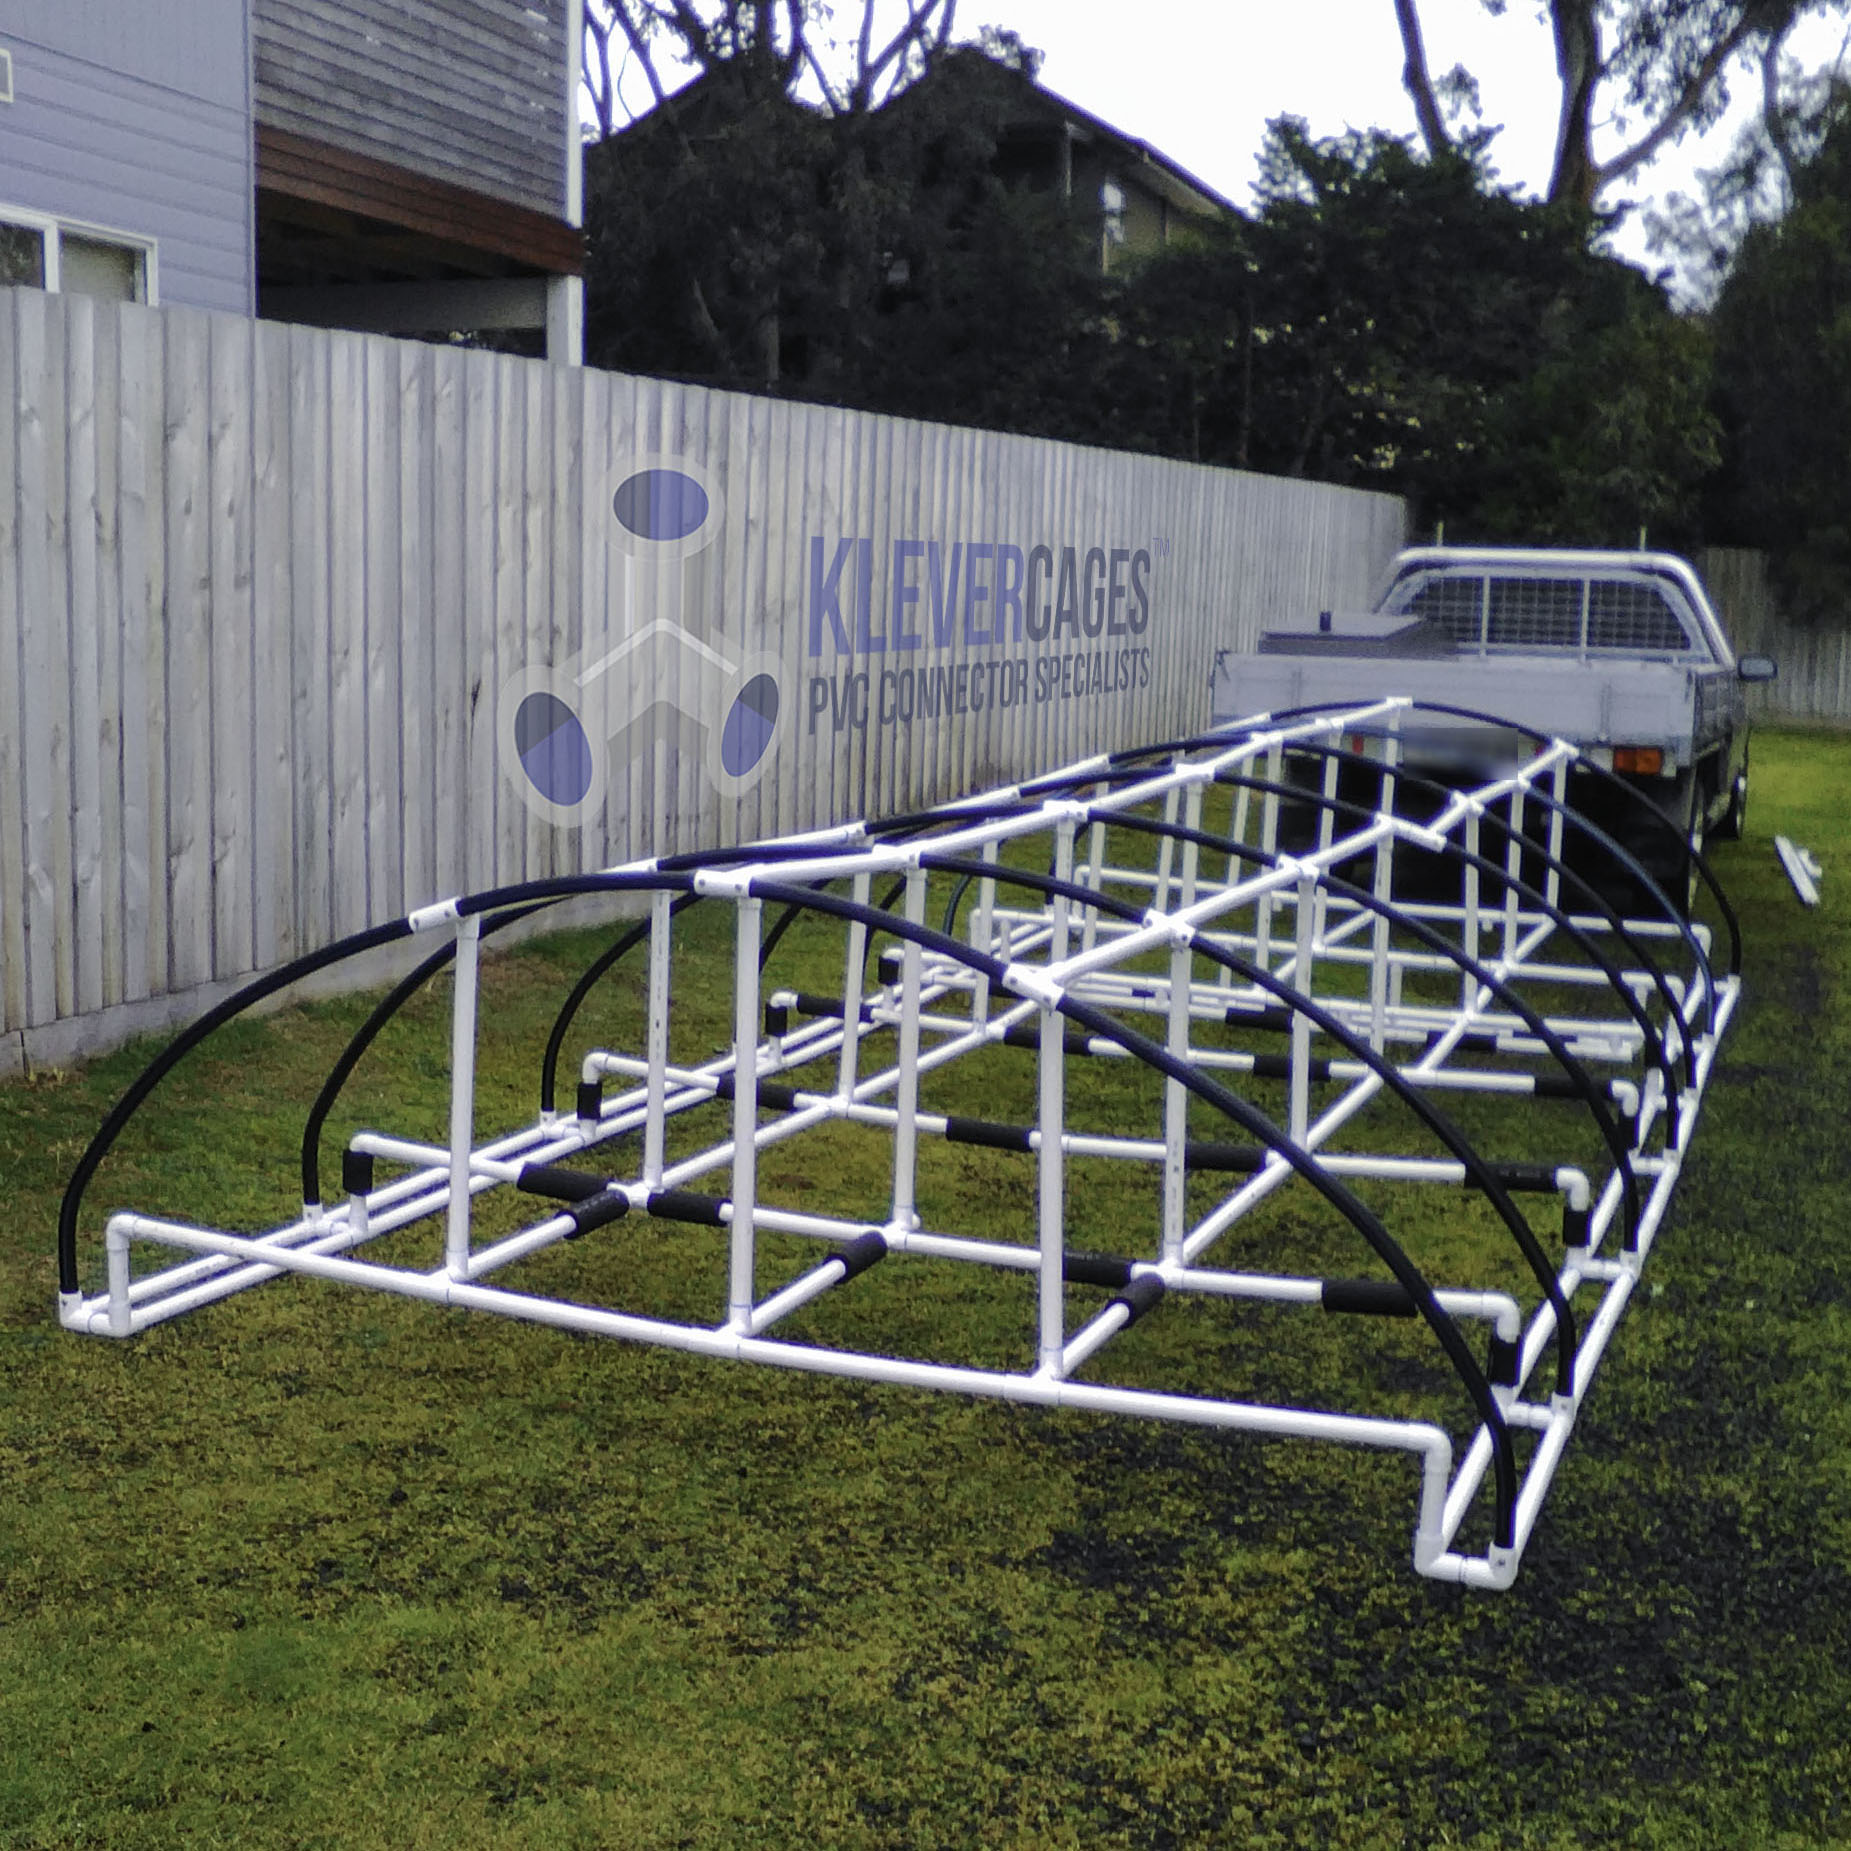 caravan cover protecting a caravan from the elements built with connector fittings from Klever Cages